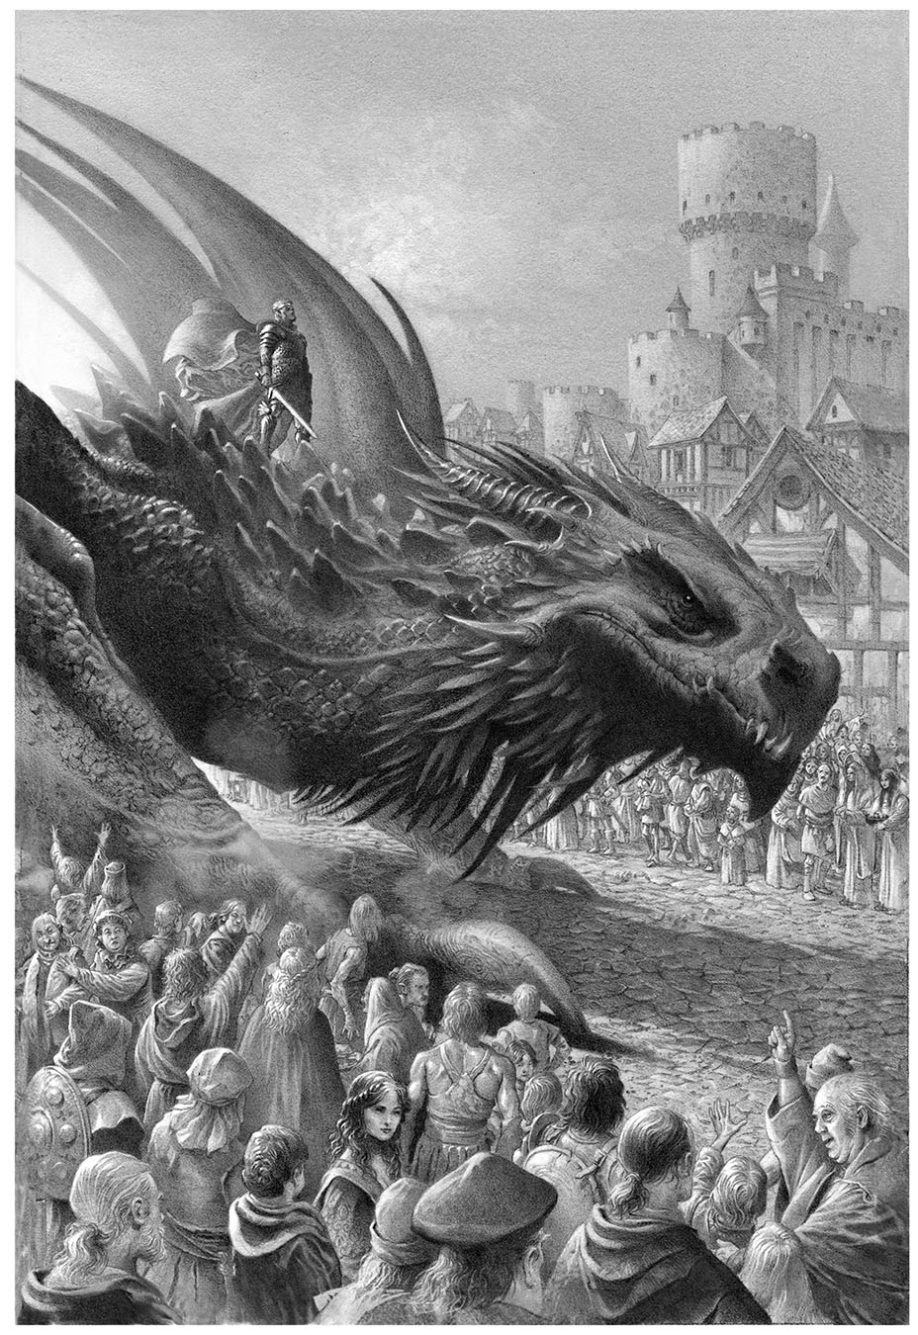 Le roi Aegon I Targaryen sur son dragon Balerion, à Port-Réal (crédits : Doug Wheatley, Fire and Blood)